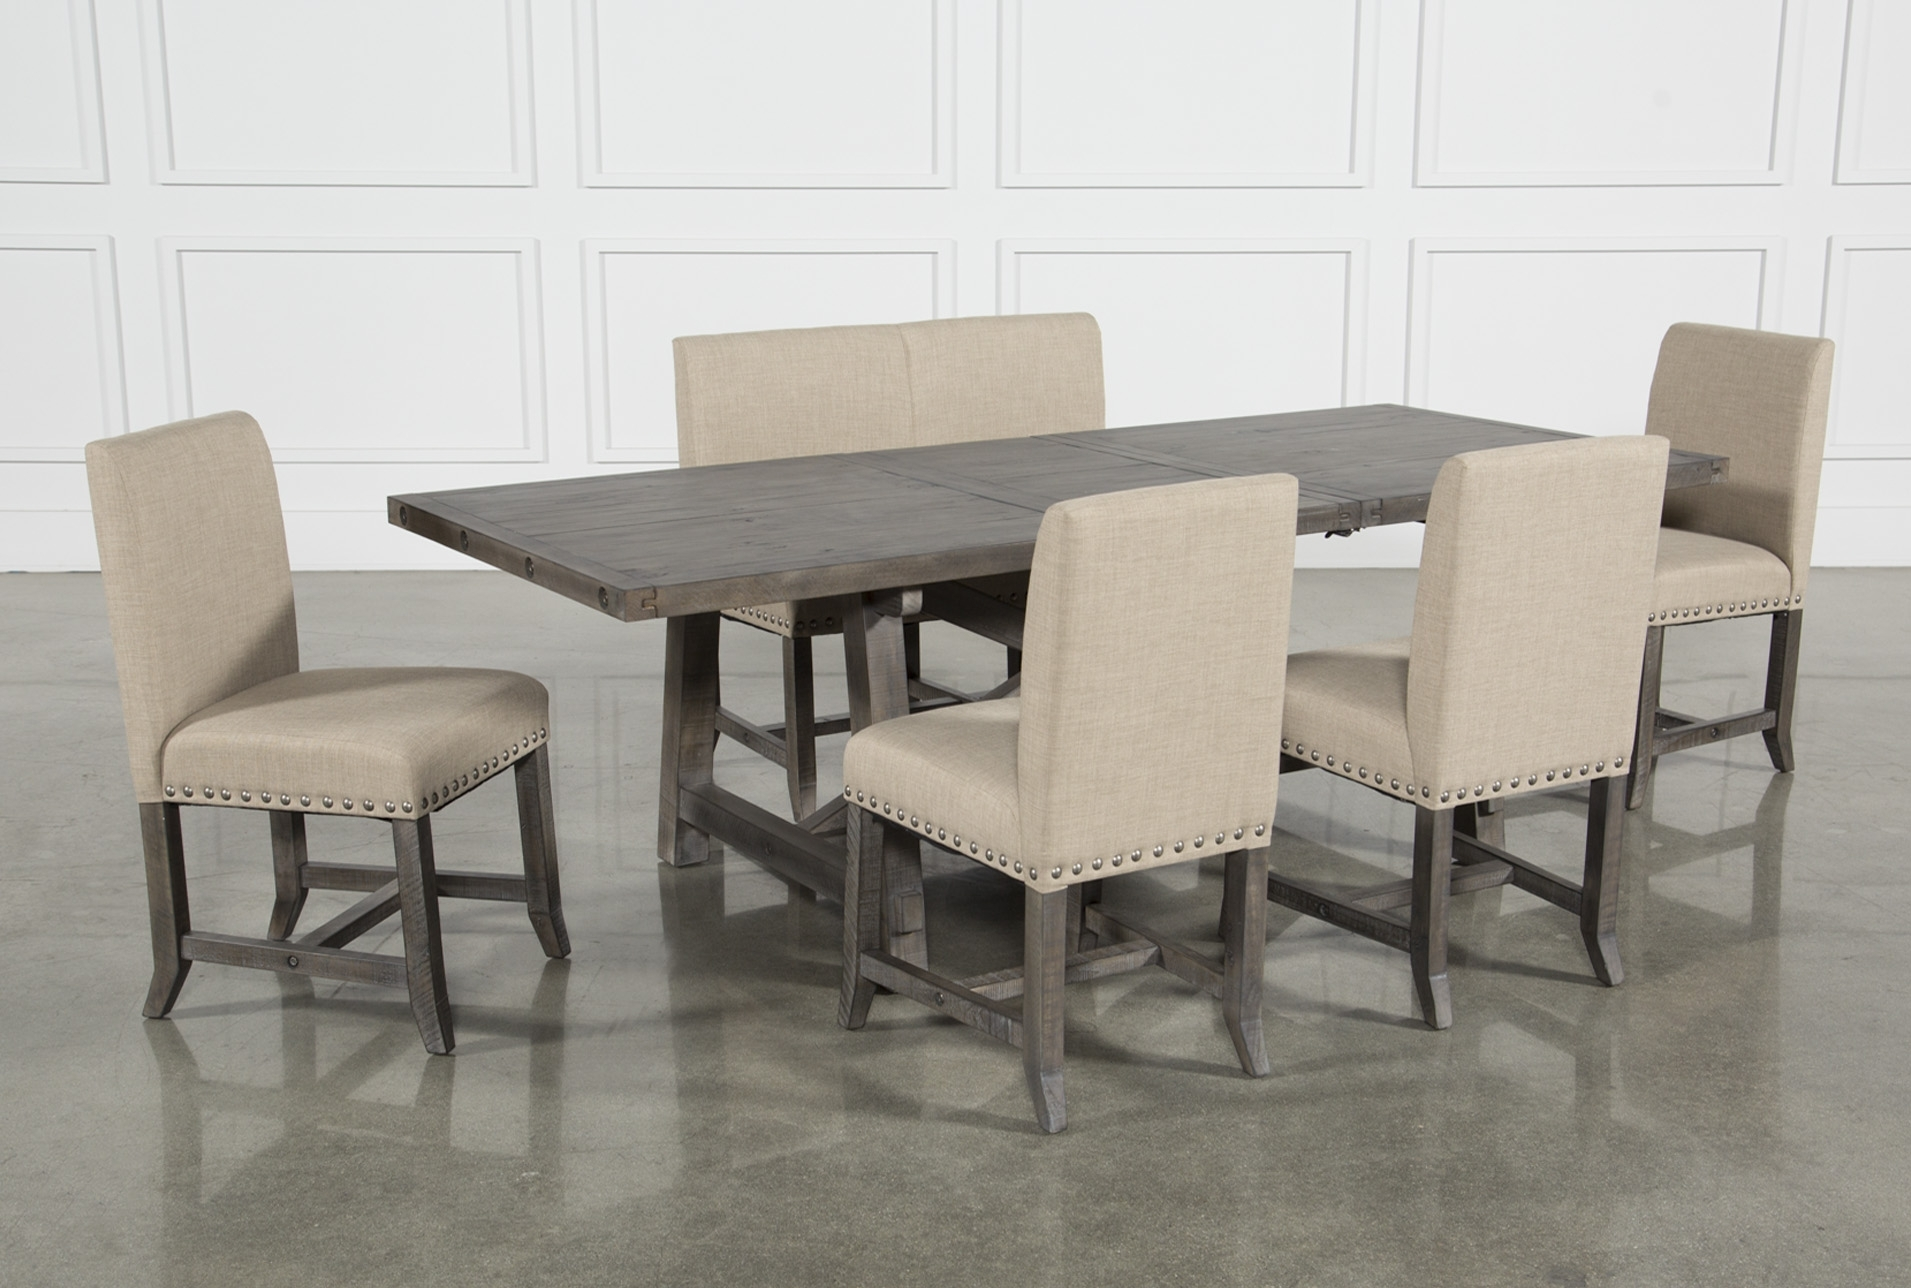 Jaxon Grey 6 Piece Rectangle Extension Dining Set W/bench & Uph Pertaining To Most Current Jaxon Grey 6 Piece Rectangle Extension Dining Sets With Bench & Wood Chairs (Photo 2 of 20)